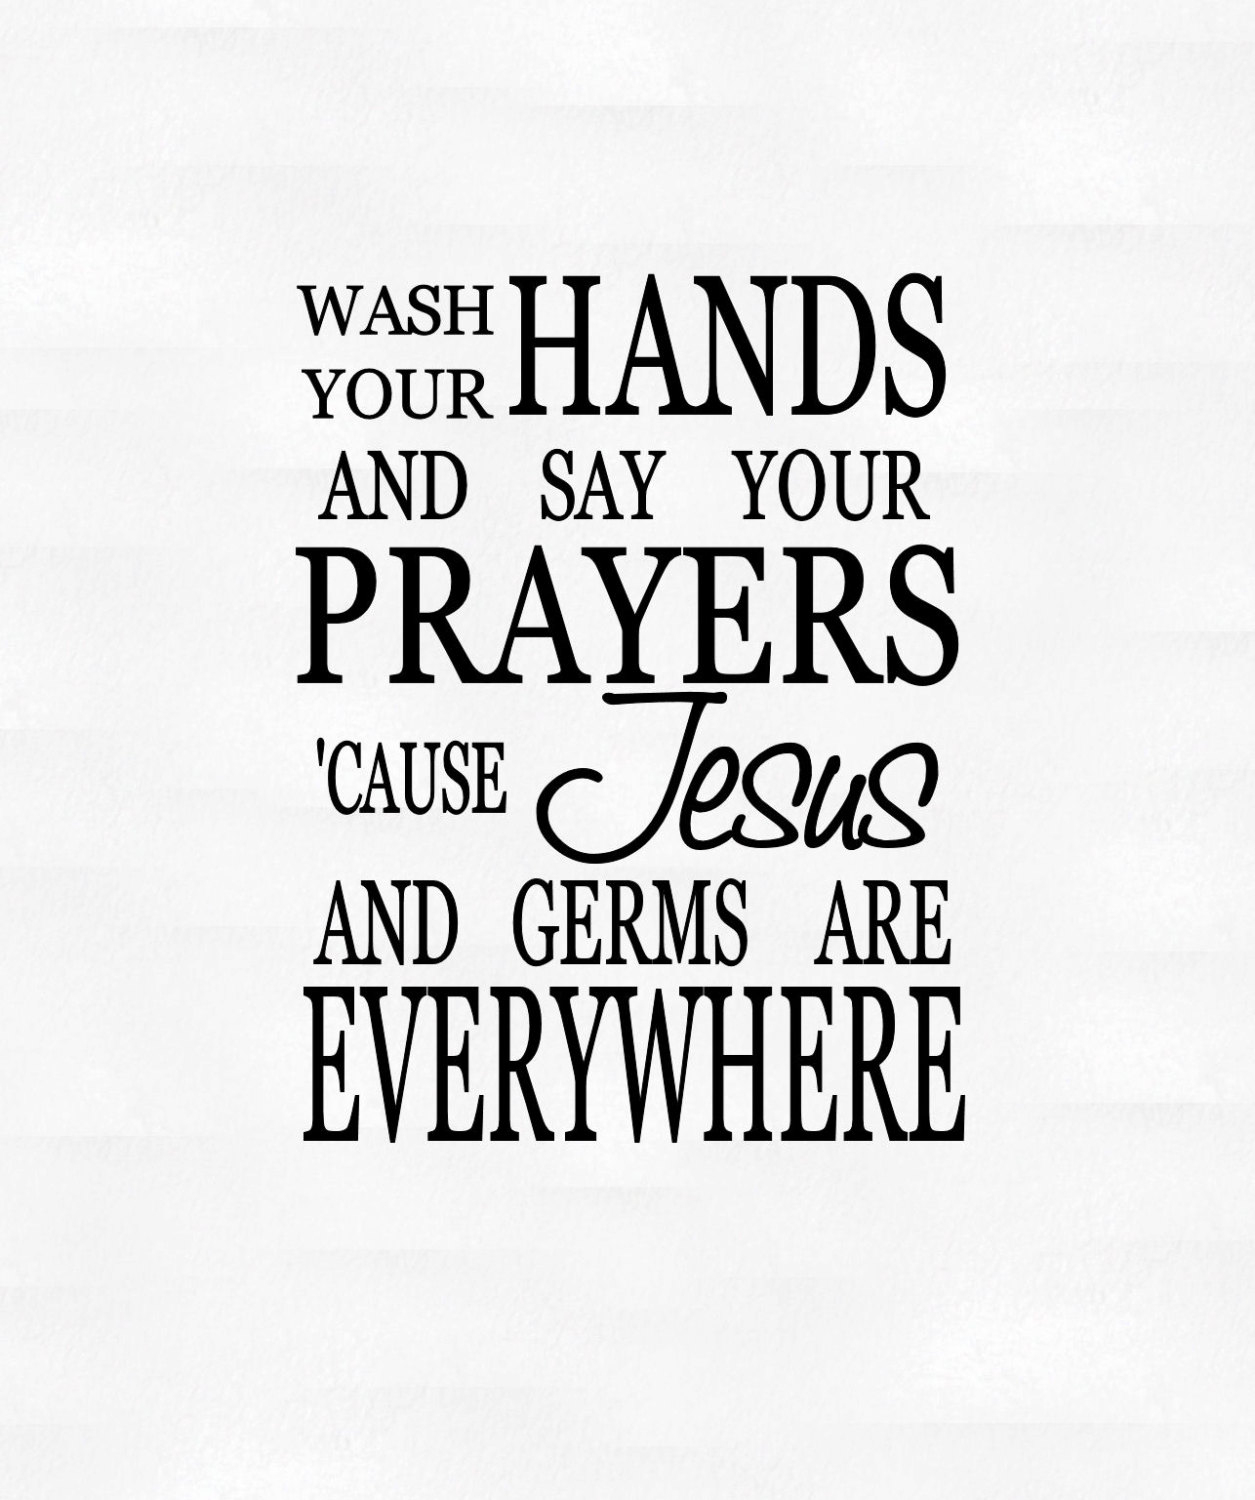 Wash Your Hands And Say Your Prayers Vinyl Wall Decal | Etsy - Wash Your Hands And Say Your Prayers Free Printable